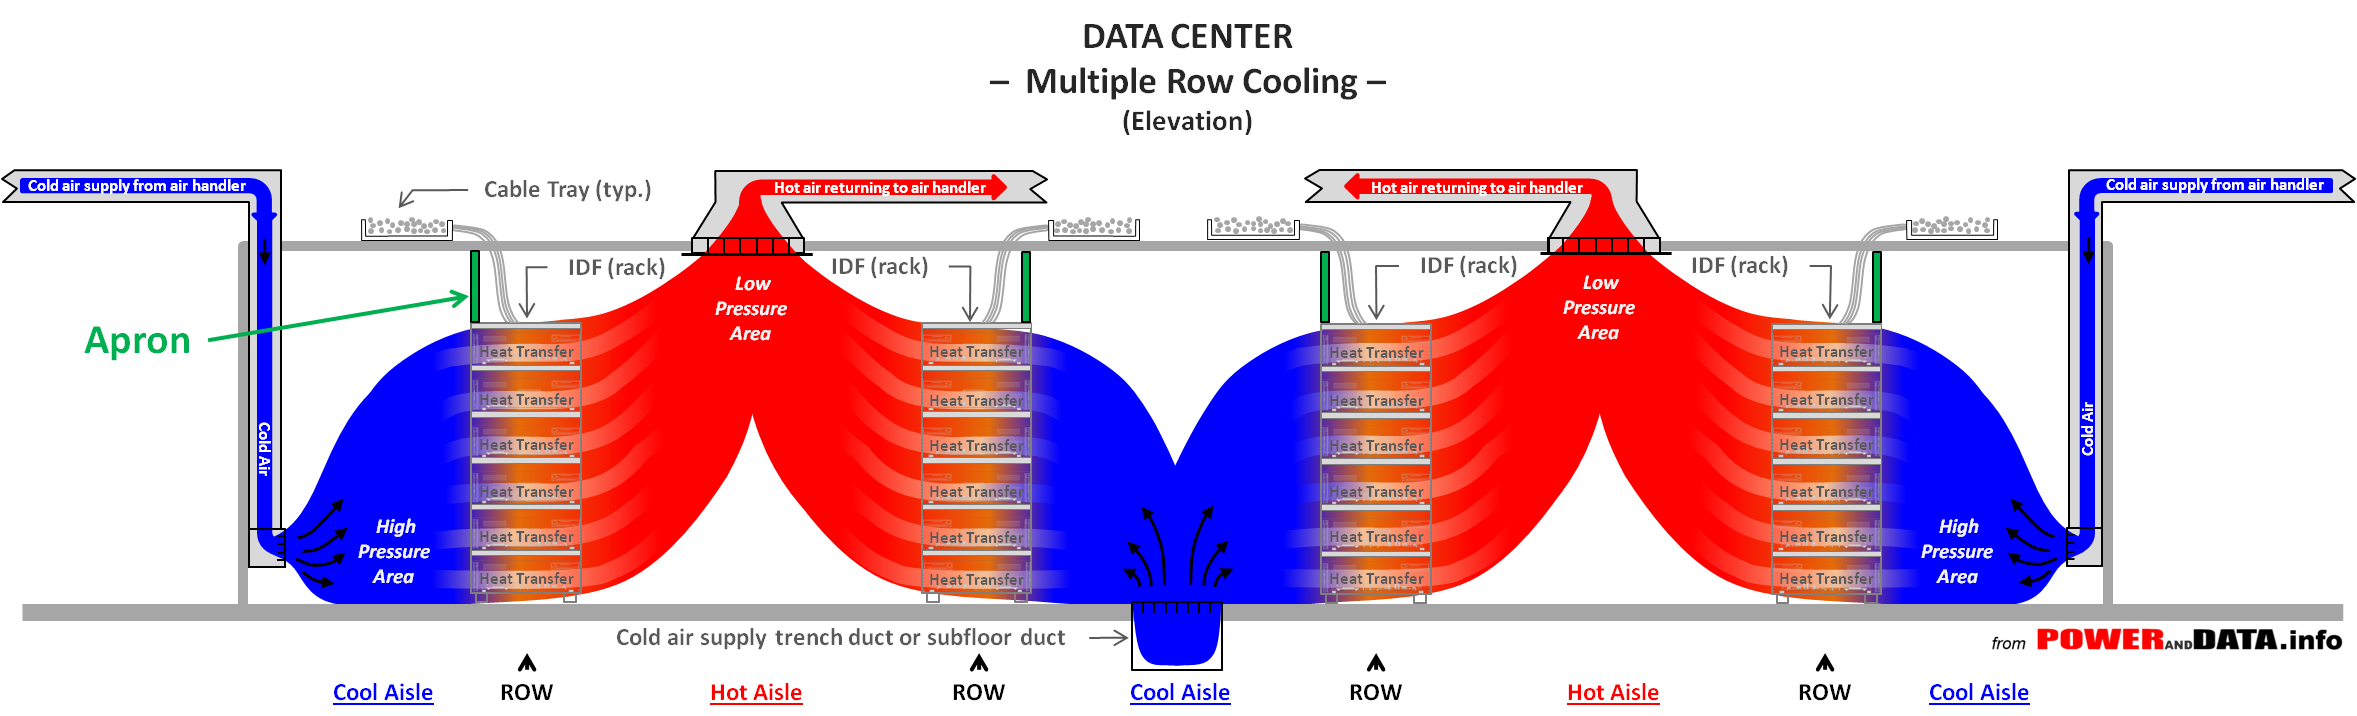 Data Center Row Cooling- Row Apron - from POWERandDATA.info